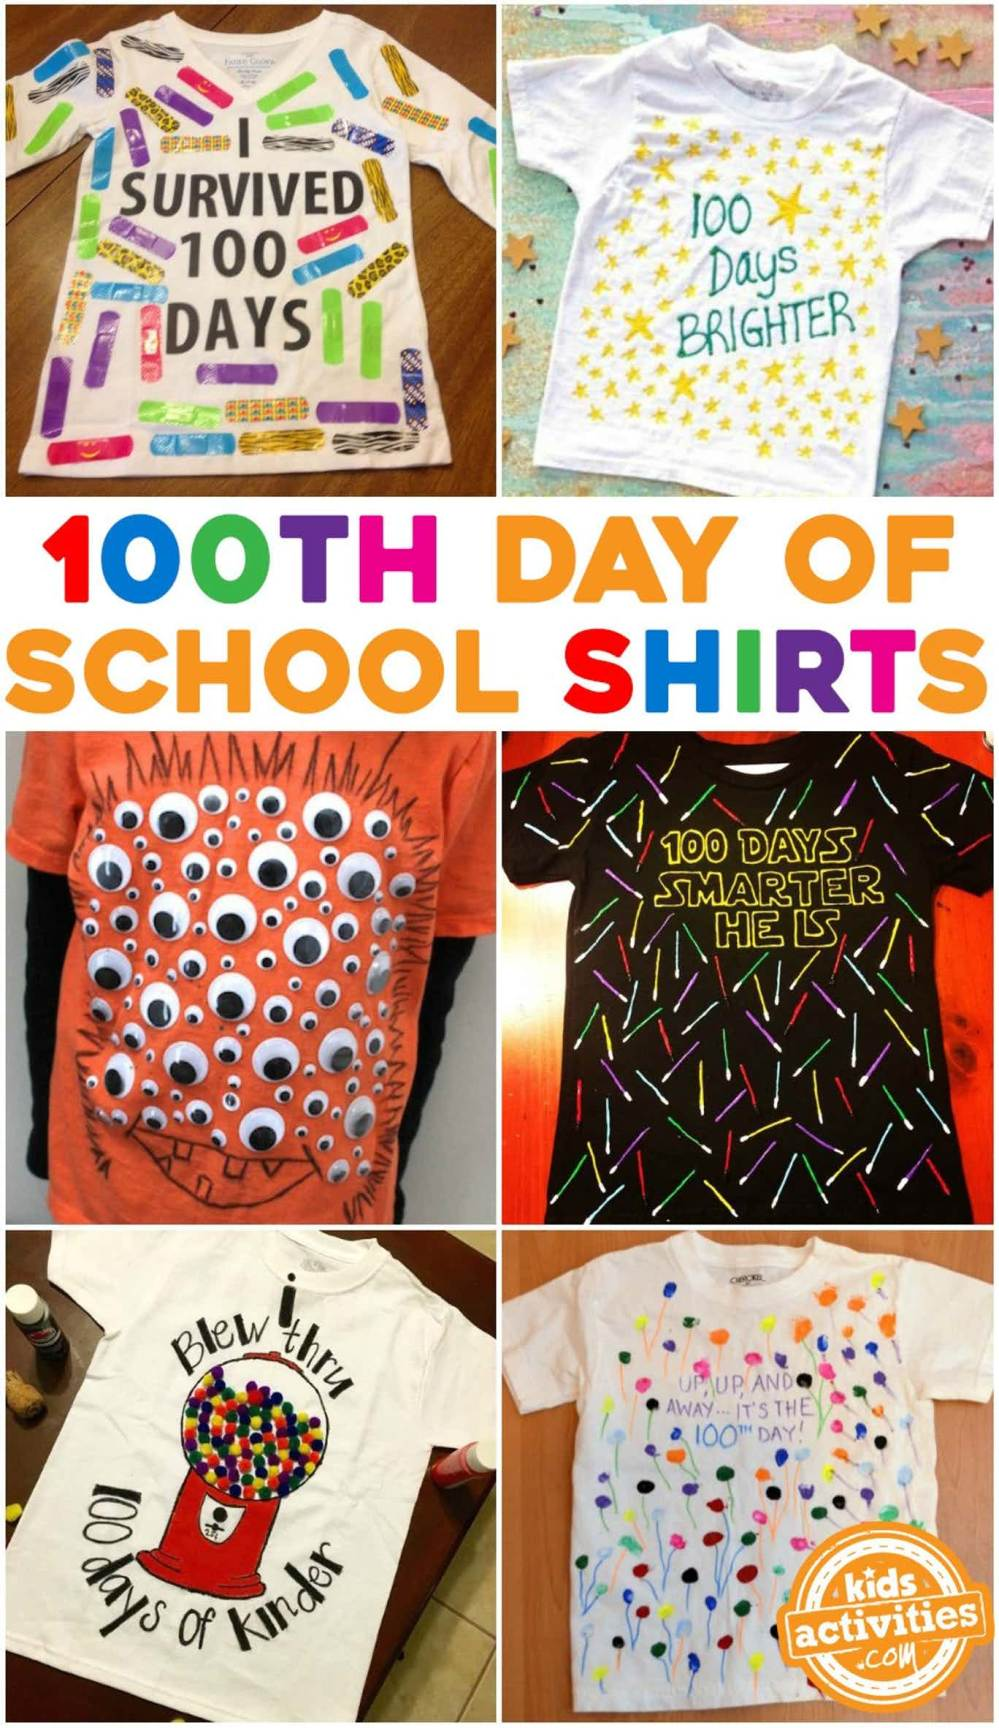 medium resolution of Super Easy 100th Day of School Shirt Ideas 2021 (yes 2021!)  Kids  Activities Blog